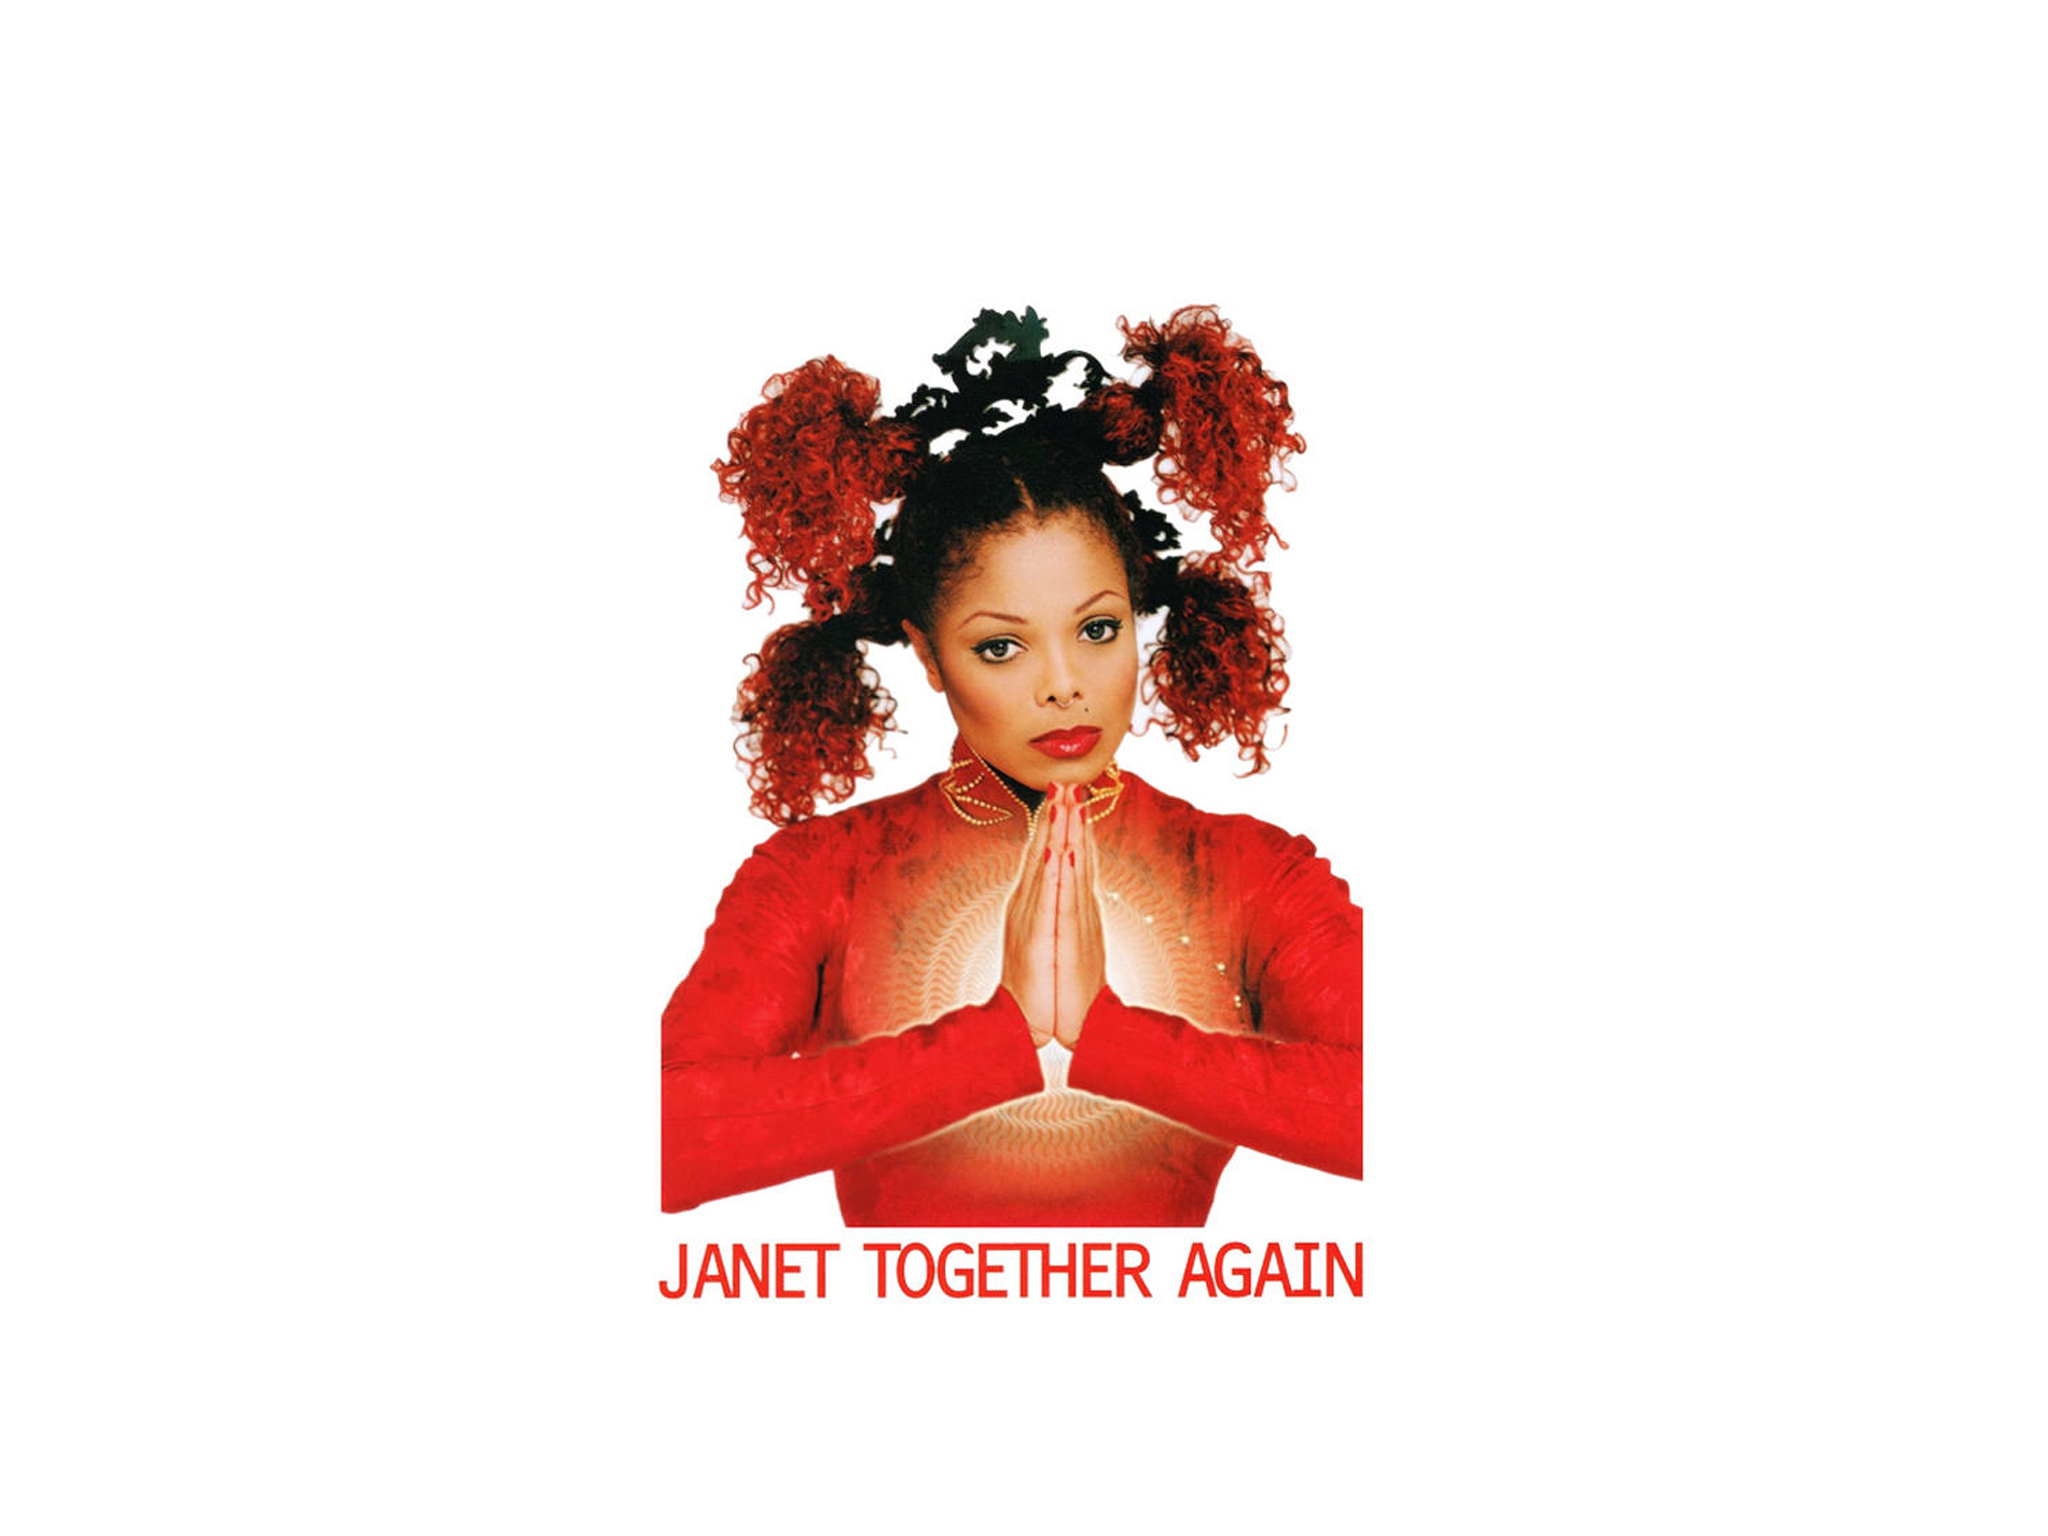 The 20 best Janet Jackson songs: together again